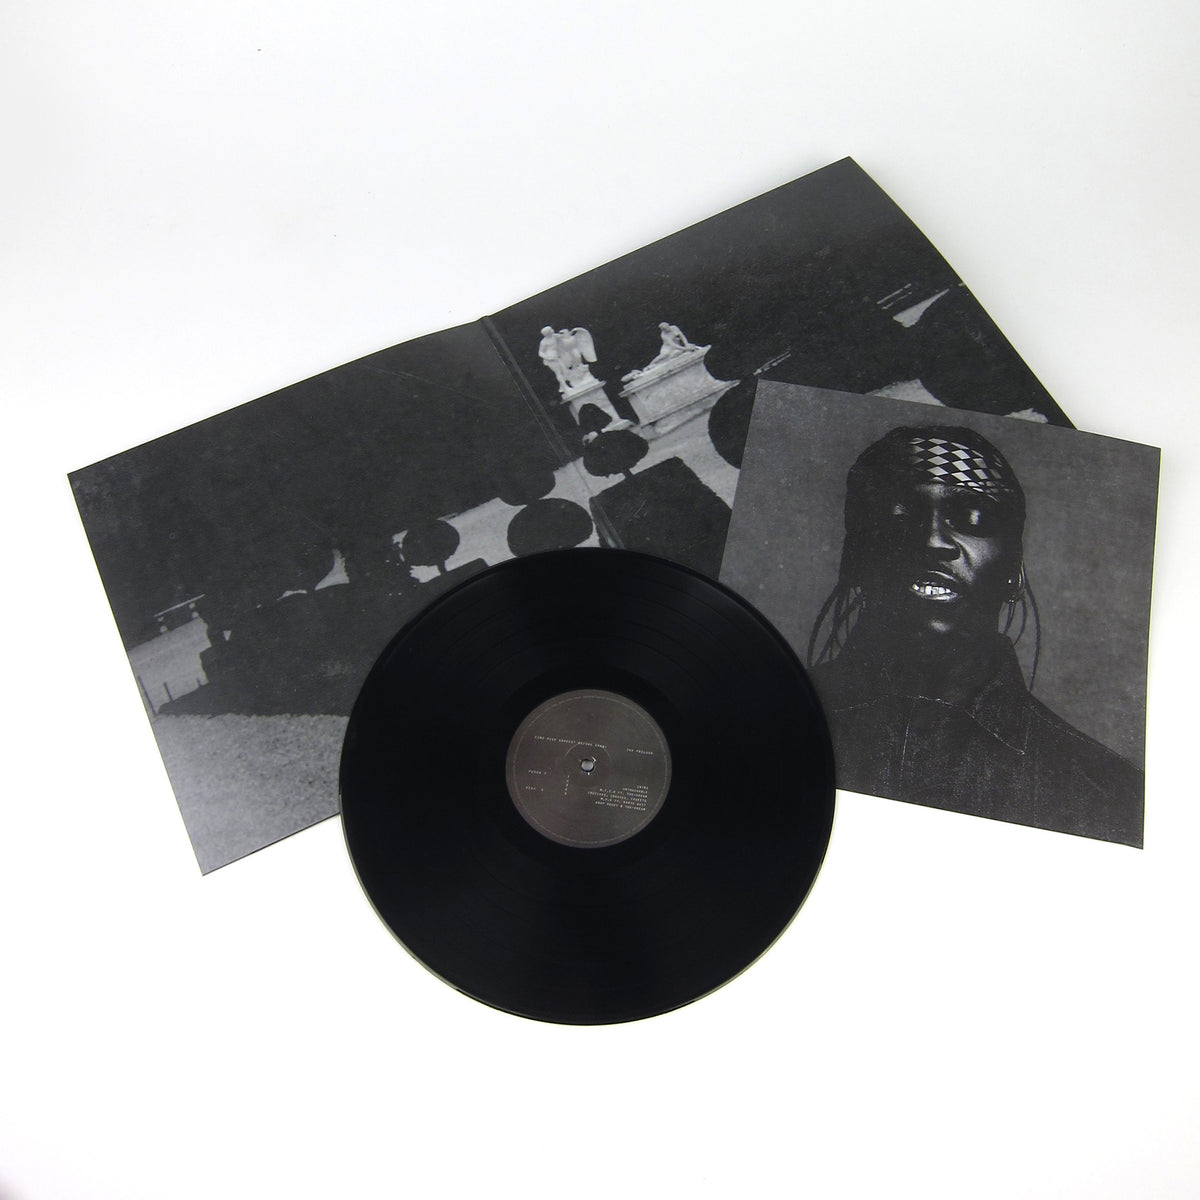 Pusha T: King Push - Darkest Before Dawn - The Prelude Vinyl LP